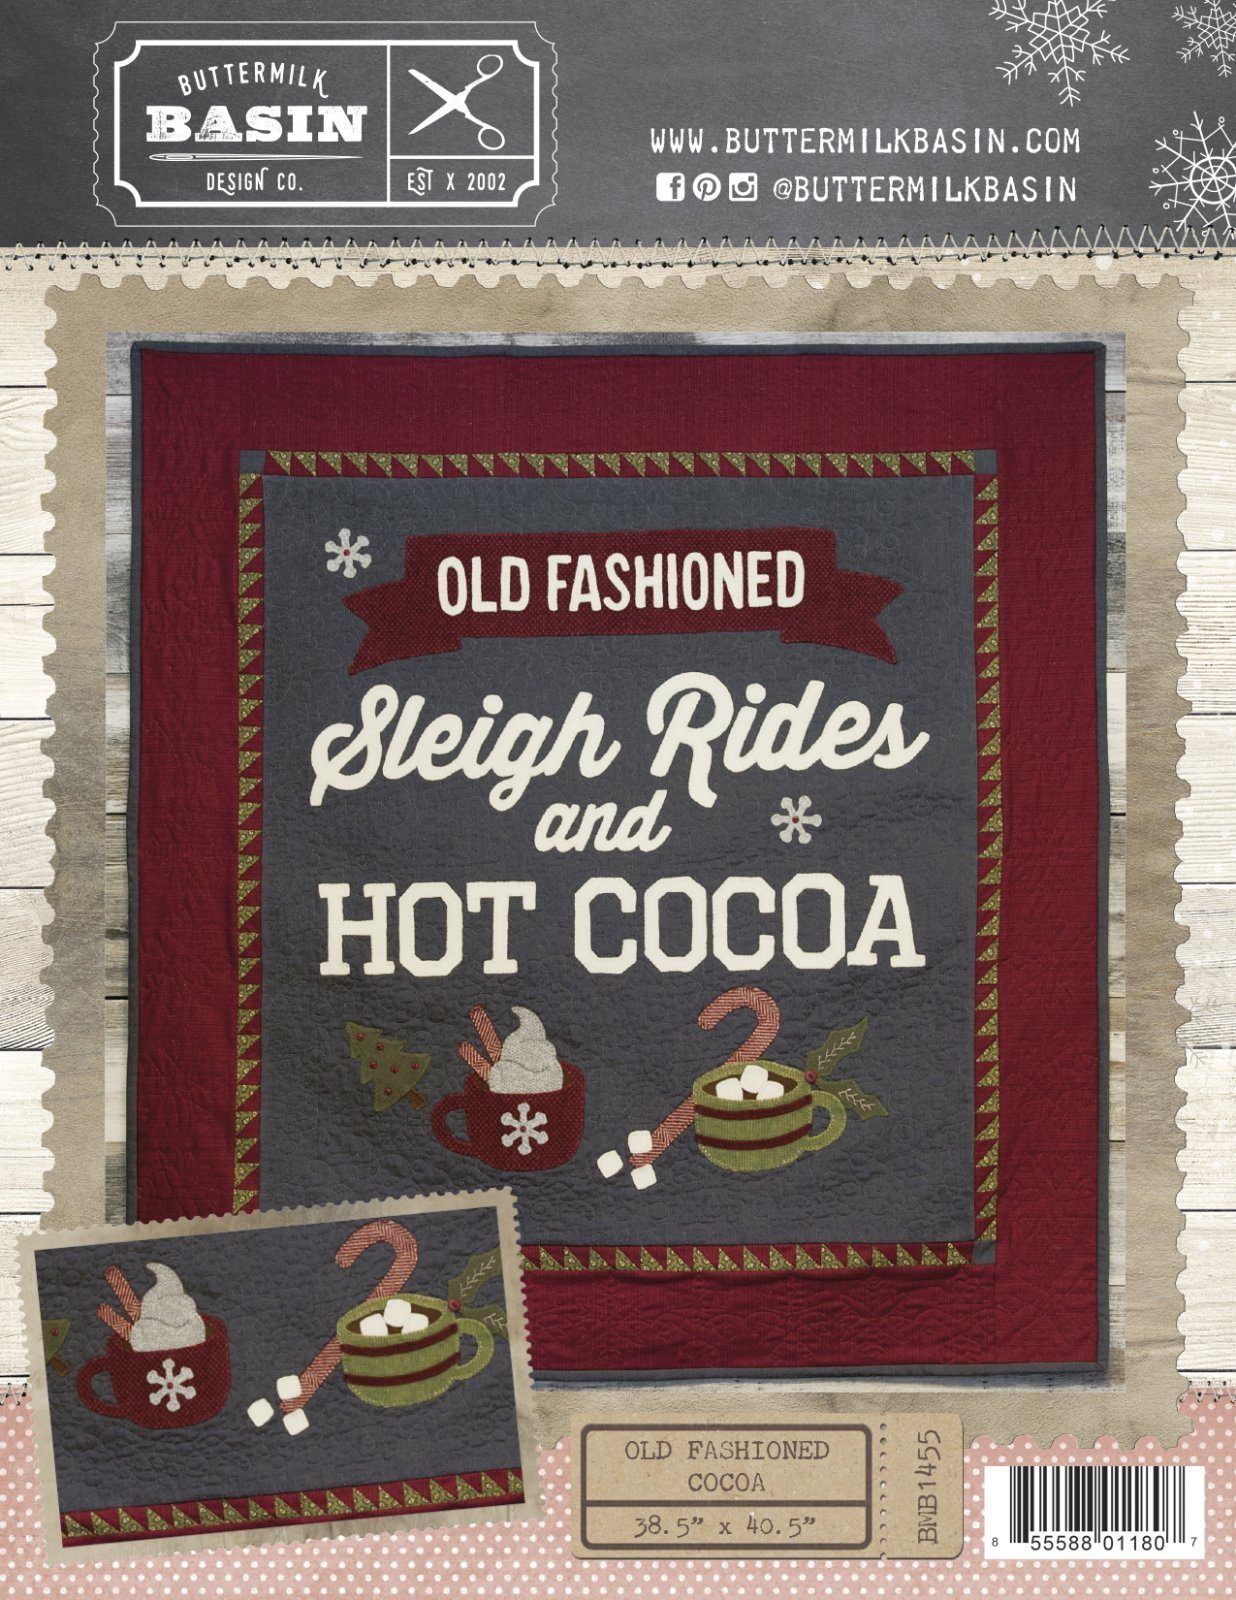 Old Fashioned Cocoa Cotton & Wool Kit